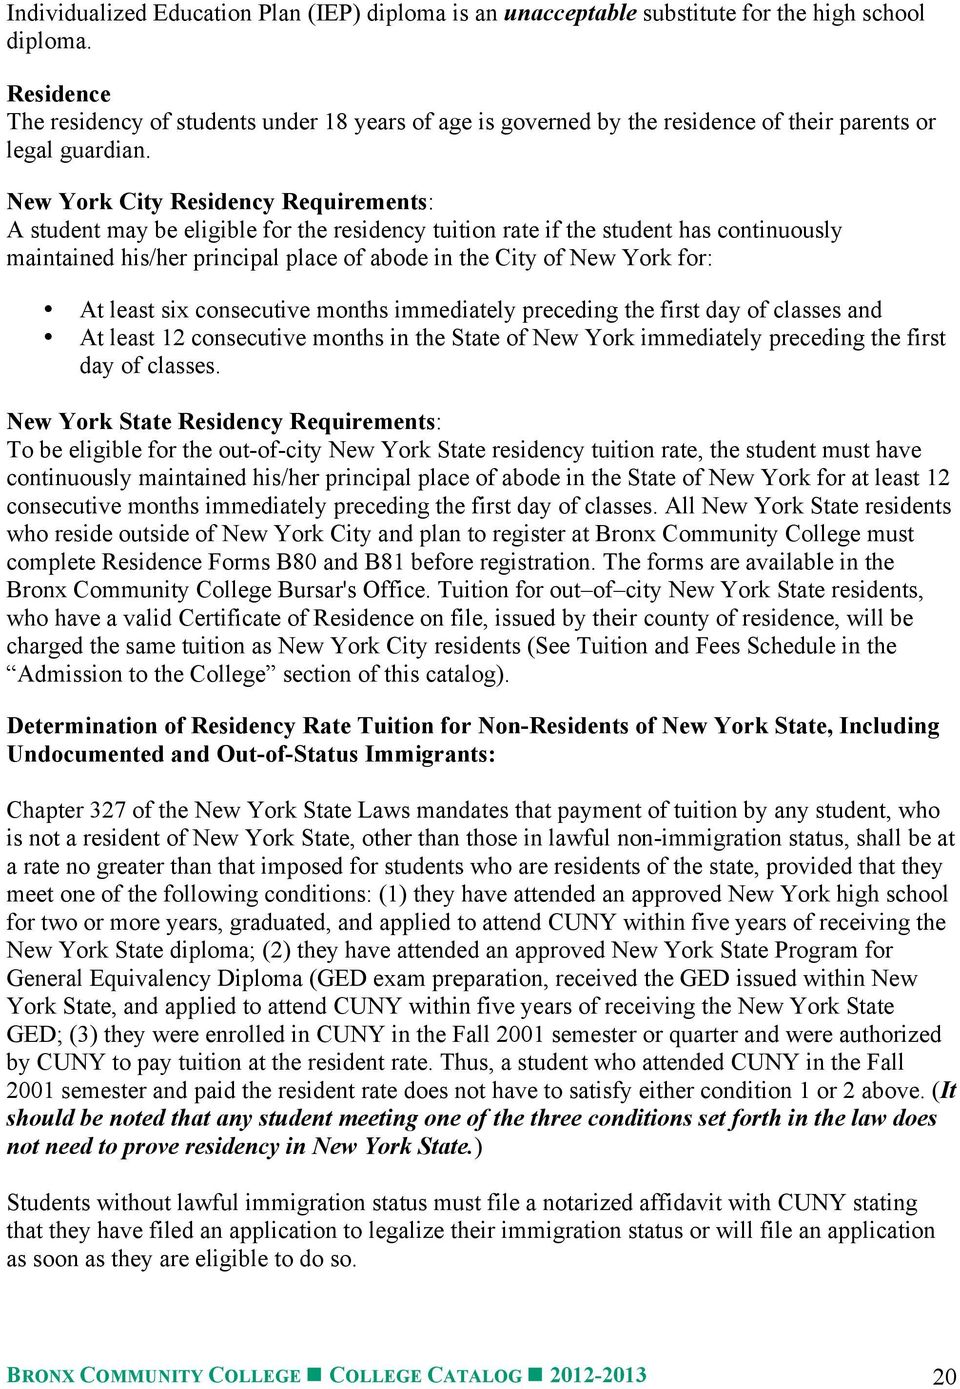 New York City Residency Requirements: A student may be eligible for the residency tuition rate if the student has continuously maintained his/her principal place of abode in the City of New York for: